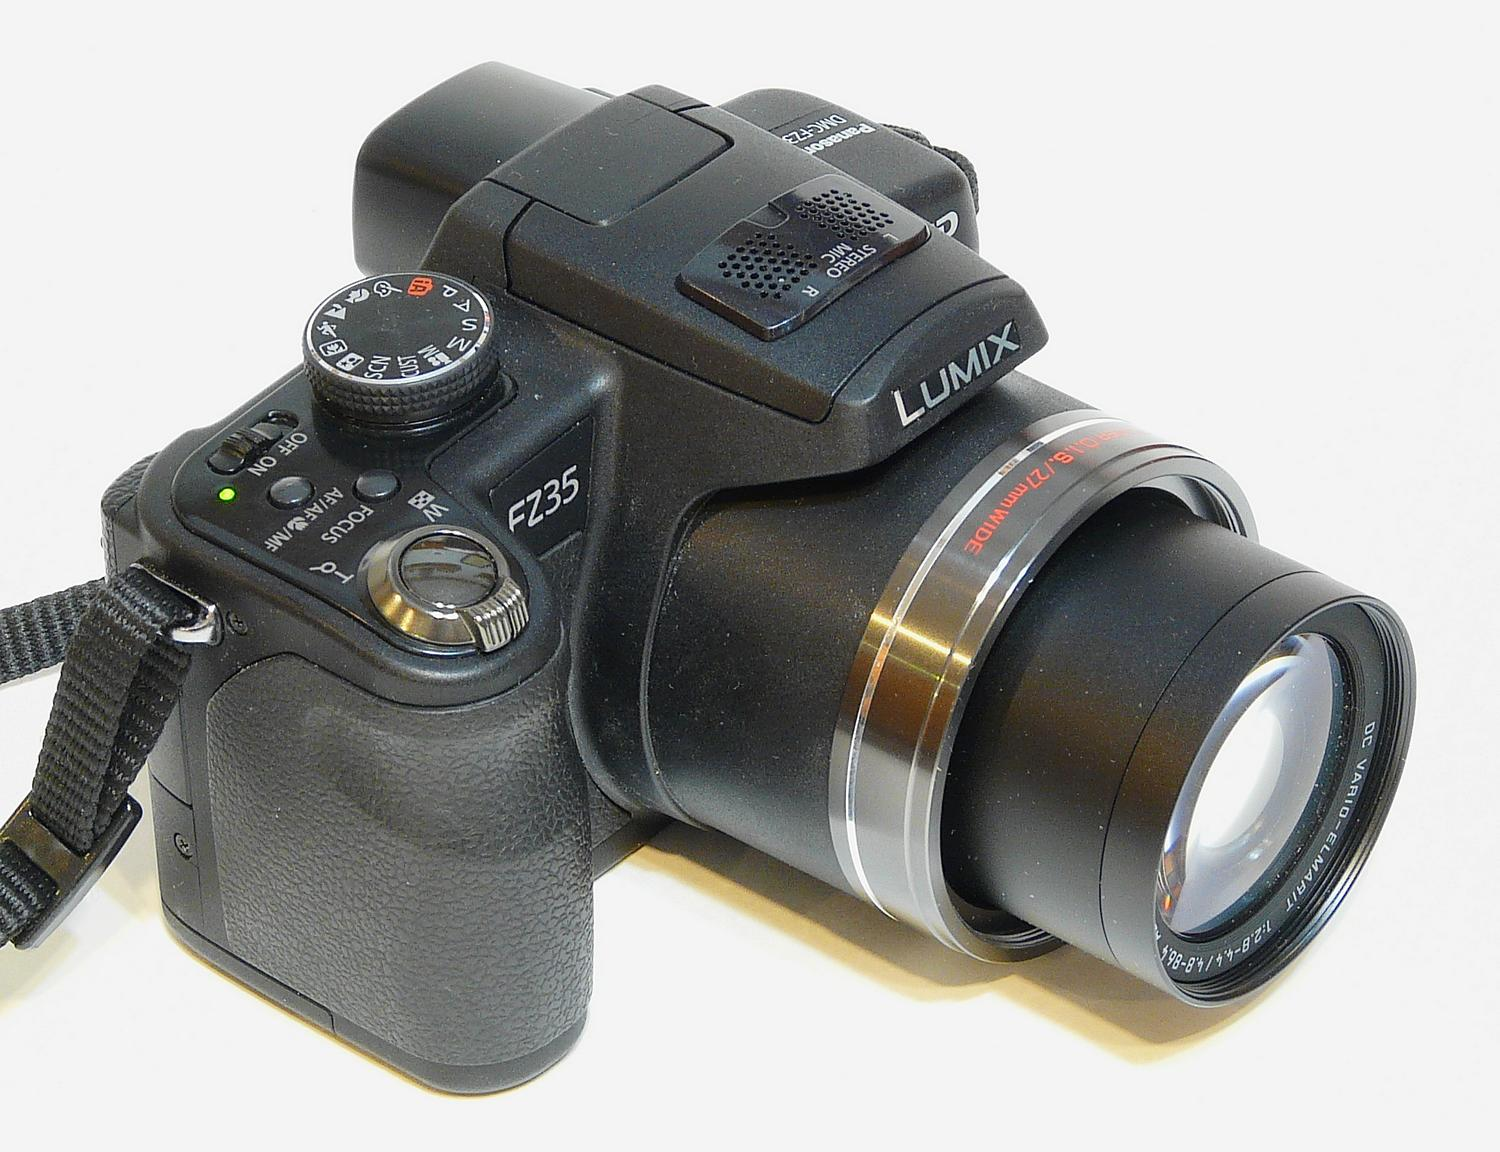 - At full telephoto setting, the FZ35's lens is exposed and vulnerable. - Panasonic DMC-FZ35 - - art  - photography - by Tony Karp